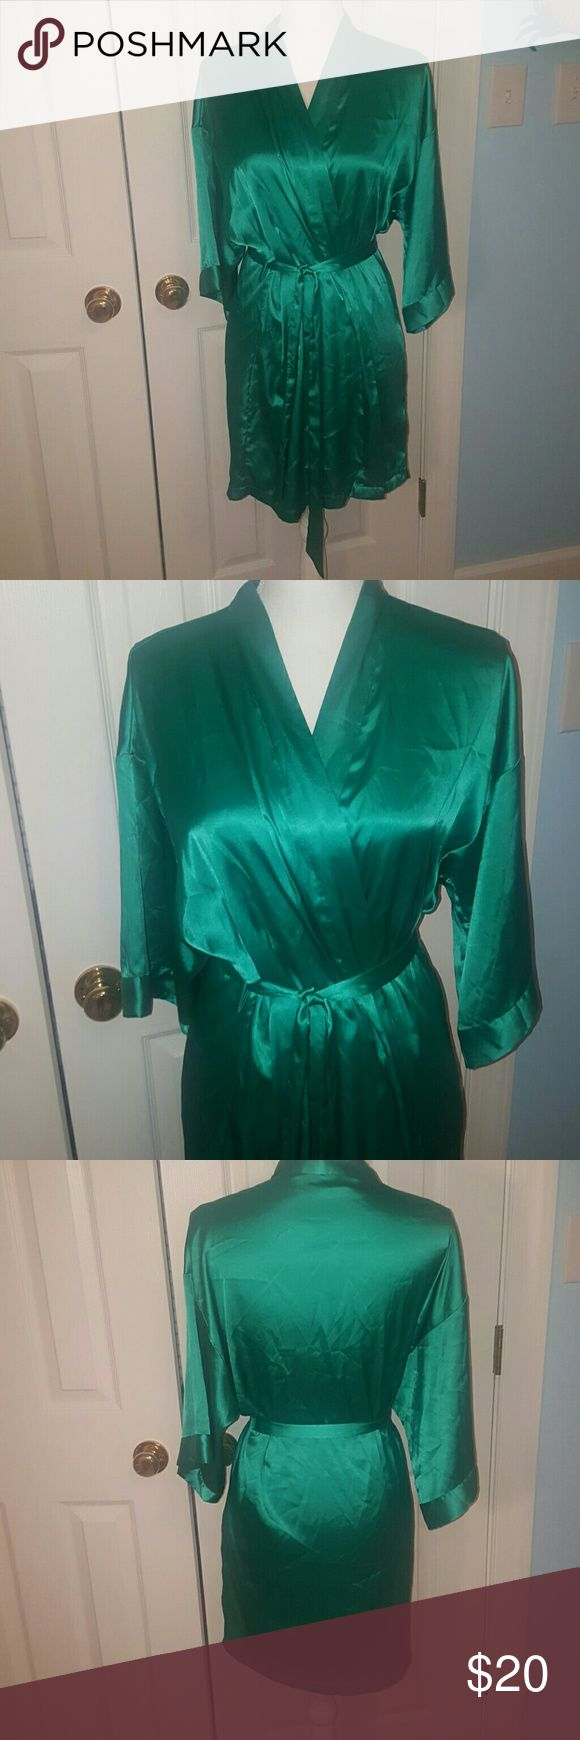 Victoria's Secret green satin kimono S/M Beautiful emerald green Victorias Secret satin kimono. Size S/M. Very great used condition, some minor picks on back but really not that noticeable at all. Bundle and save! Victoria's Secret Intimates & Sleepwear Chemises & Slips